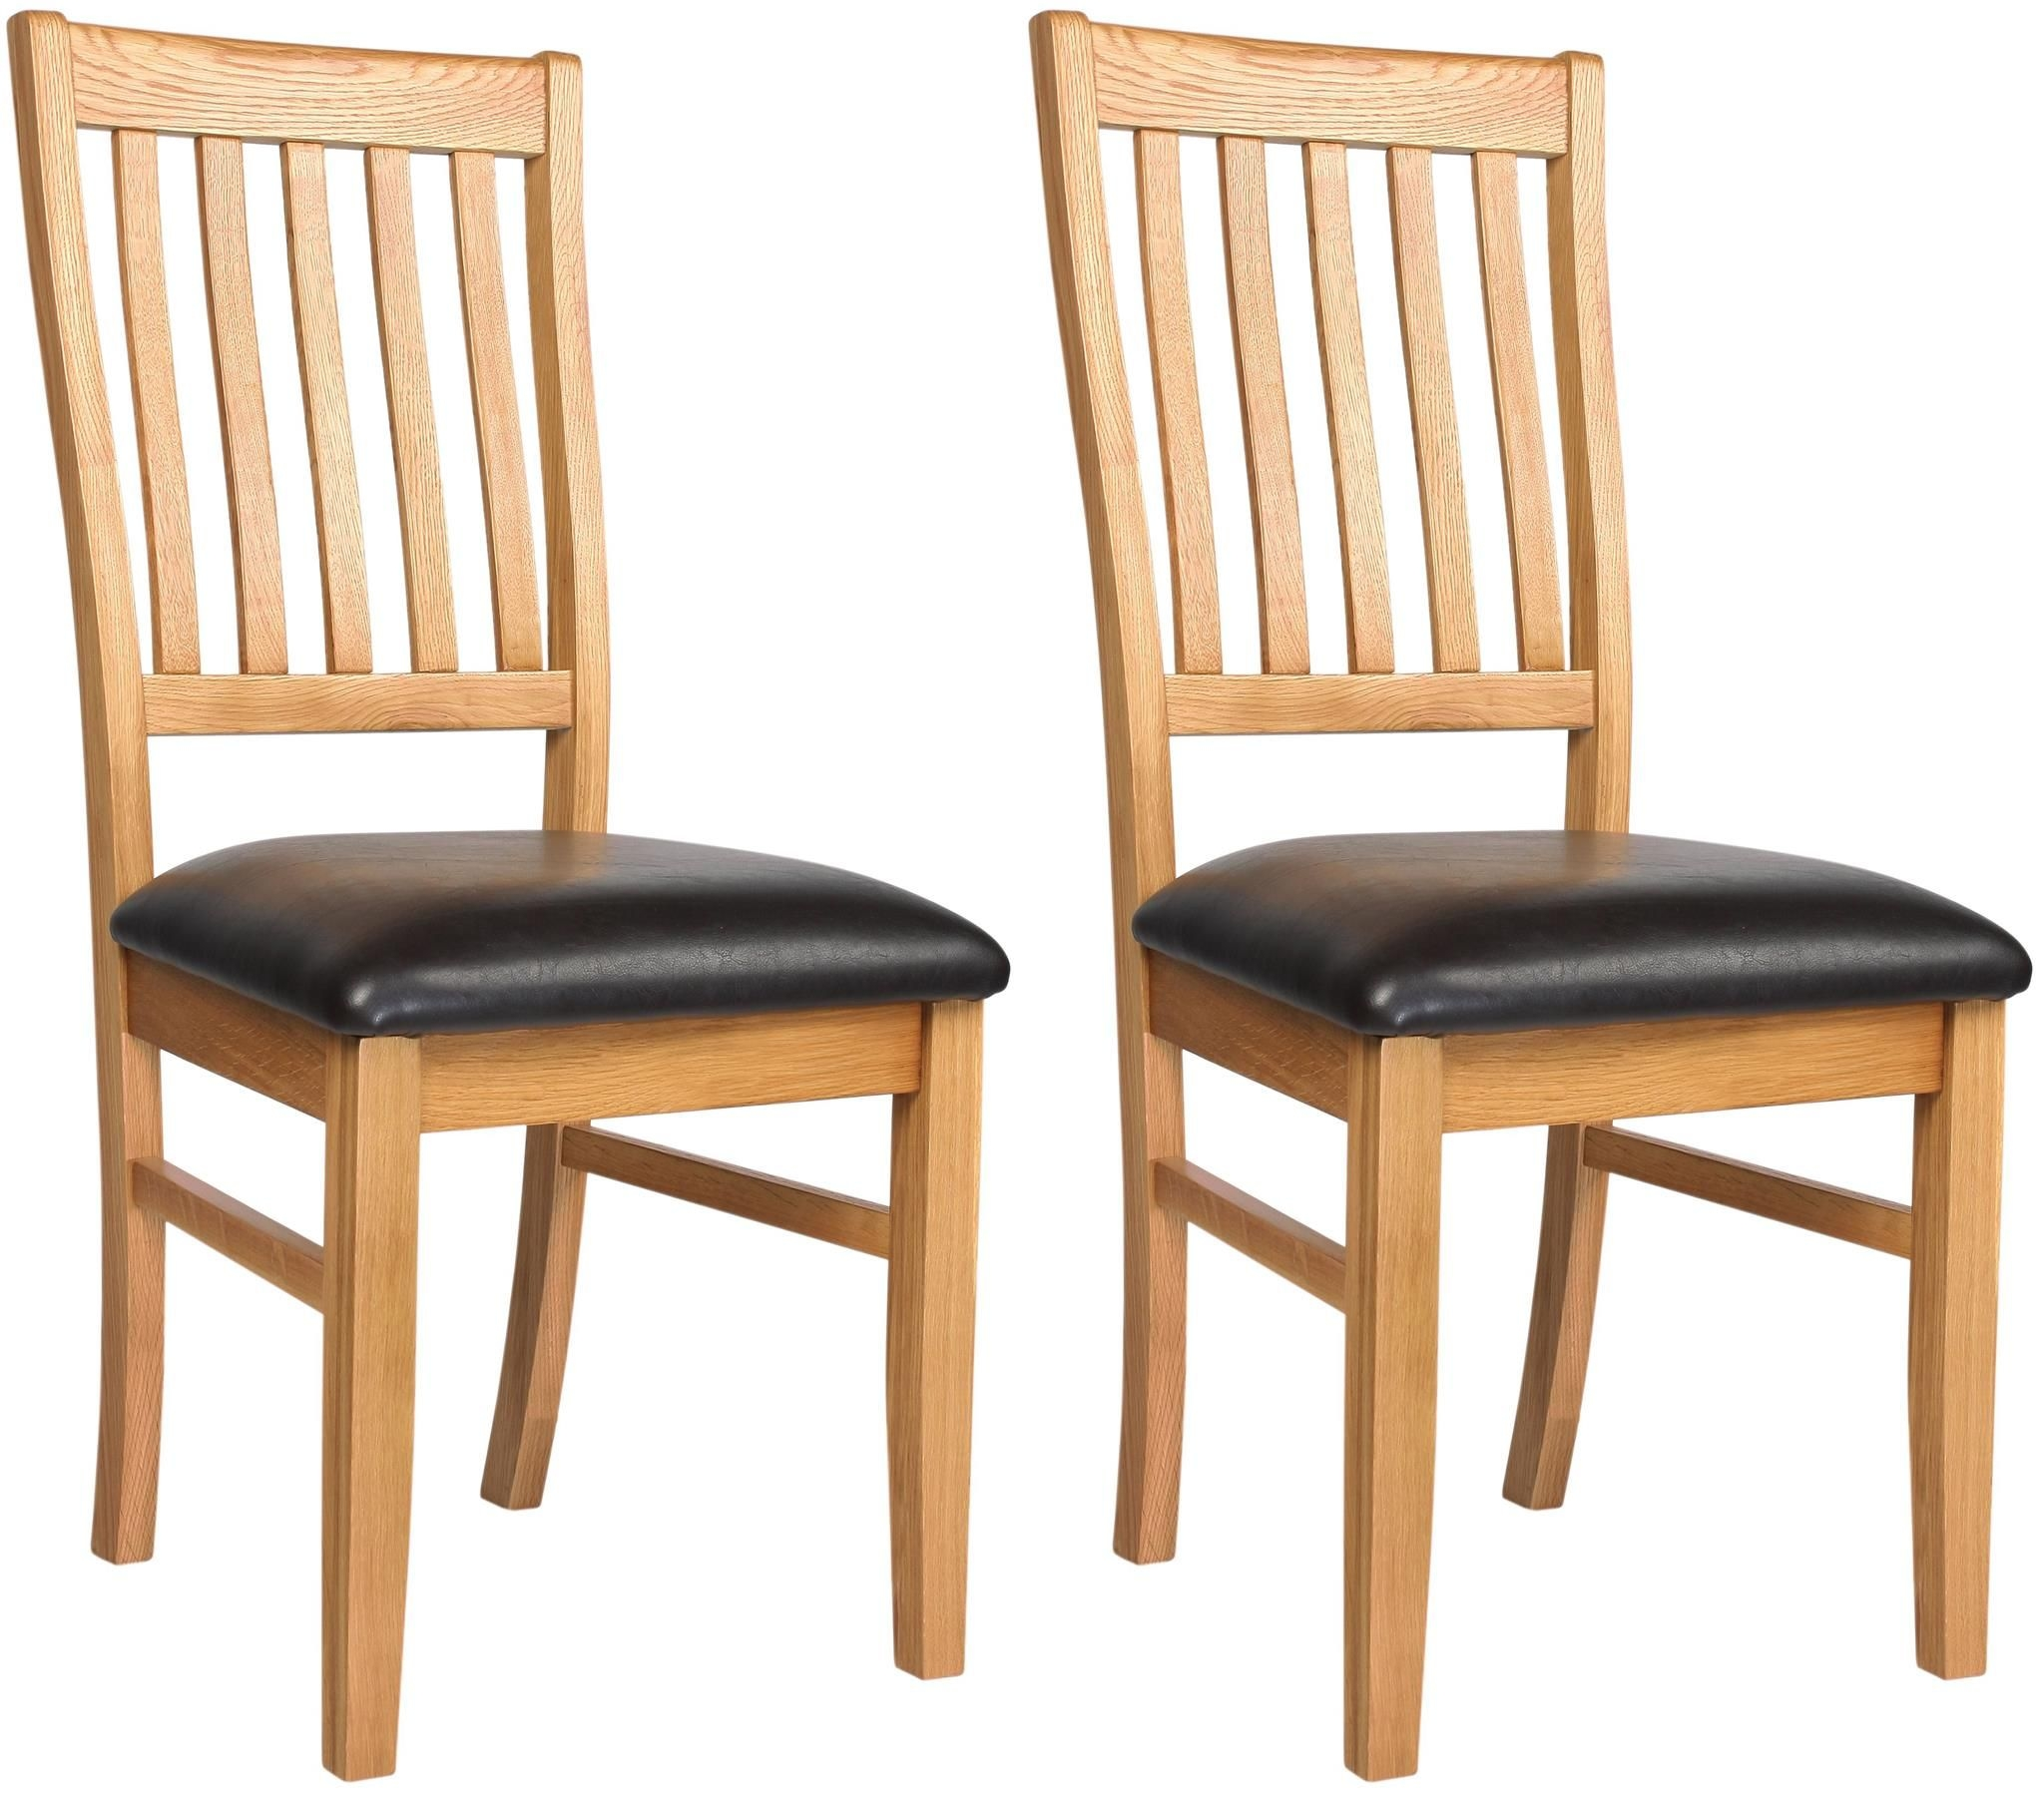 Clearance Half Price - Ametis Croft Oak Dining Chair (Pair) - New - A38